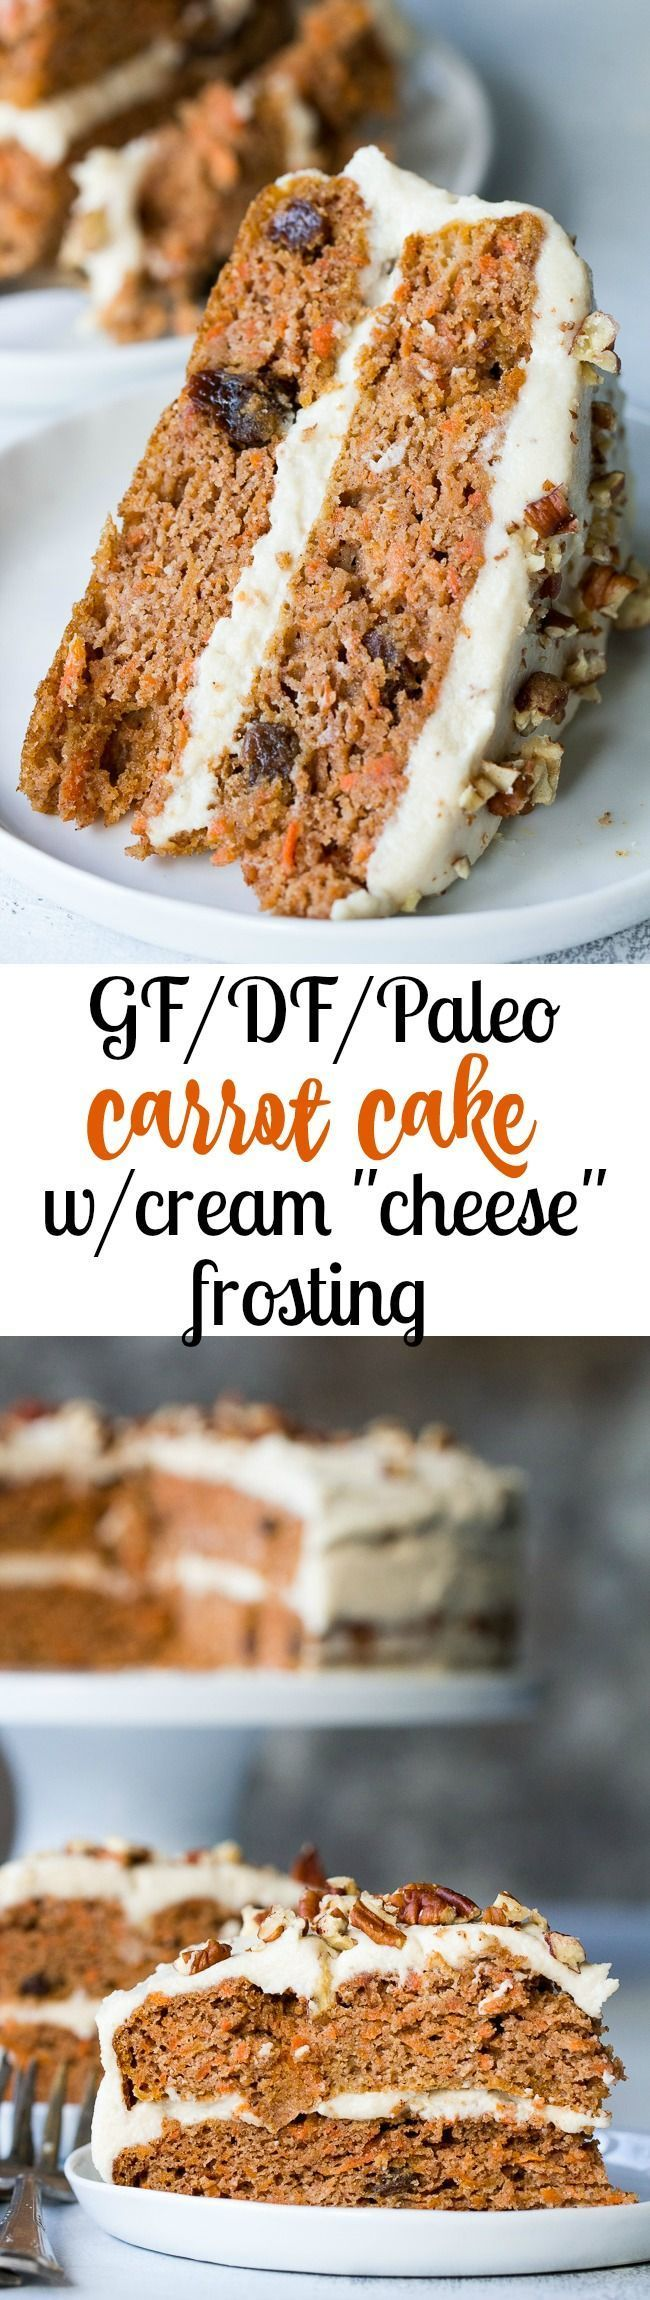 "This Paleo Carrot Cake with coconut ""cream cheese"" frosting is perfectly sweet and moist, lightly spiced and no one will guess it's grain free + dairy free!"